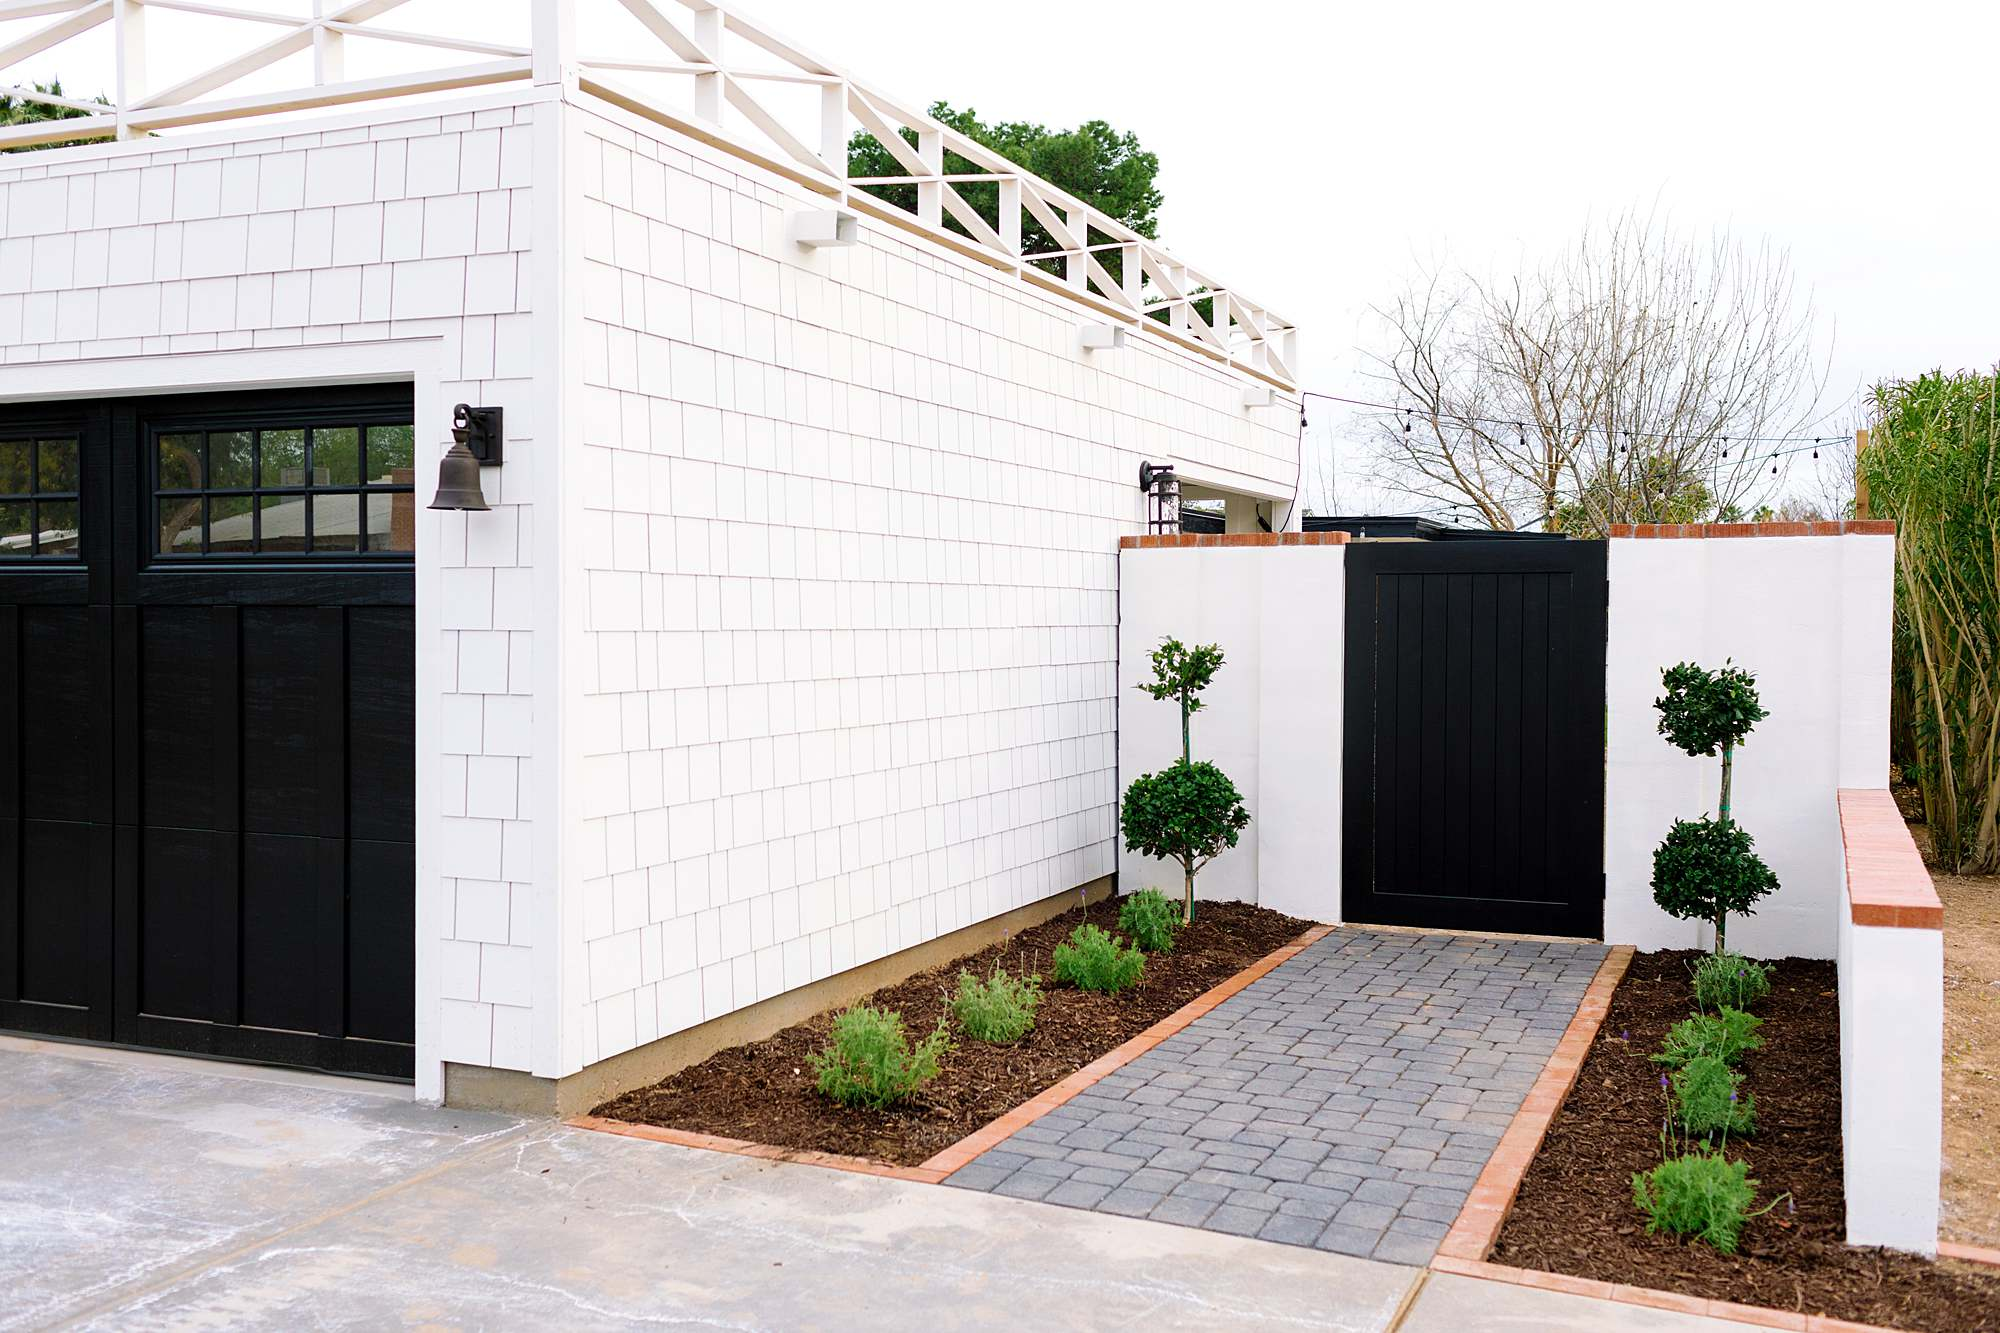 front yard gate side of flat roof garage fiber cement shake traditional black and white home garage - arizona phoenix blogger home blog Diana Elizabeth